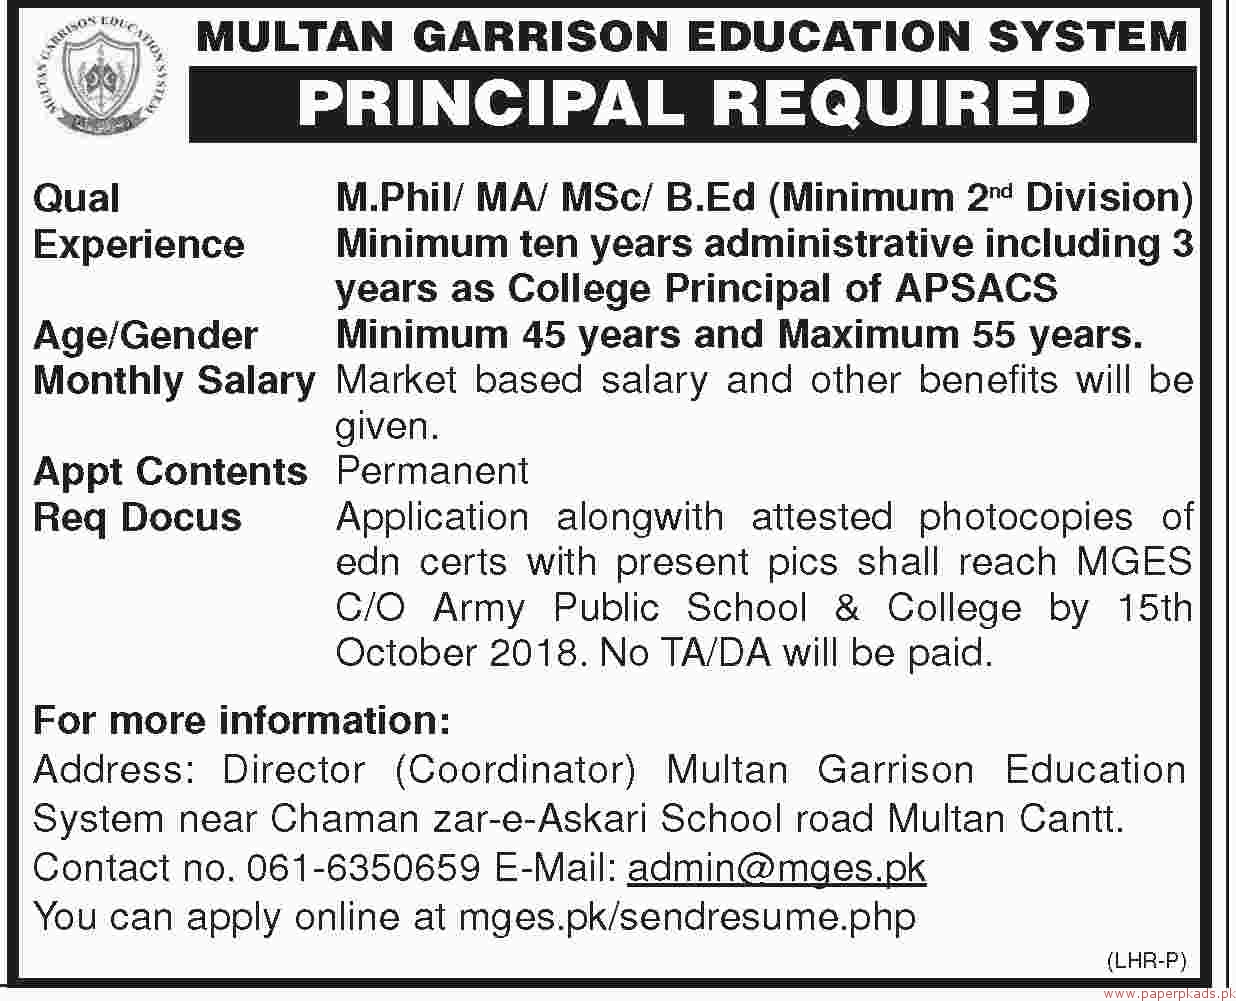 Multan Garrison Education System Jobs 2018 Latest